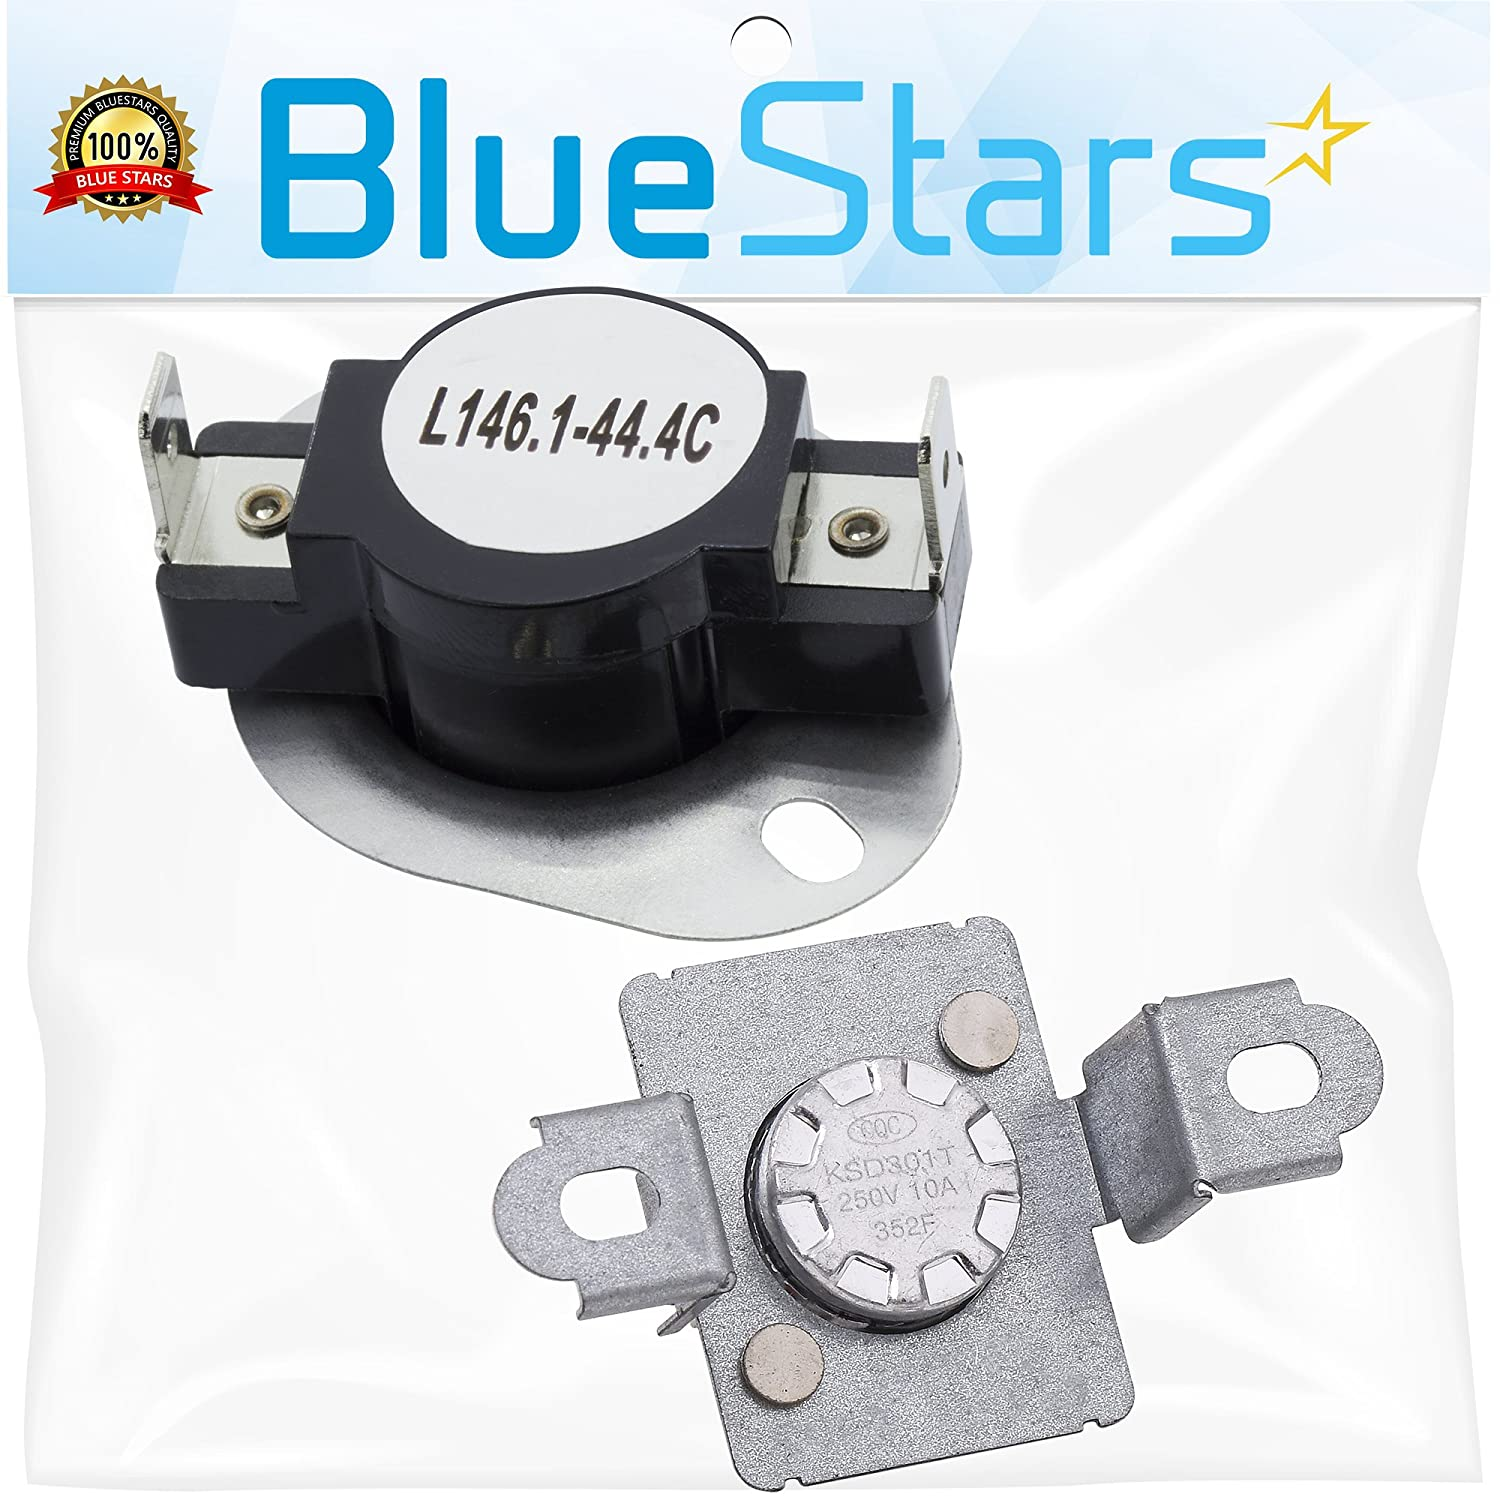 279973 Dryer Thermal Cut-Off Fuse Kit Replacement part by Blue Stars - Exact Fit for Whirlpool & Kenmore Dryer - Replaces 279973, 3391913, 8318314, AP3094323